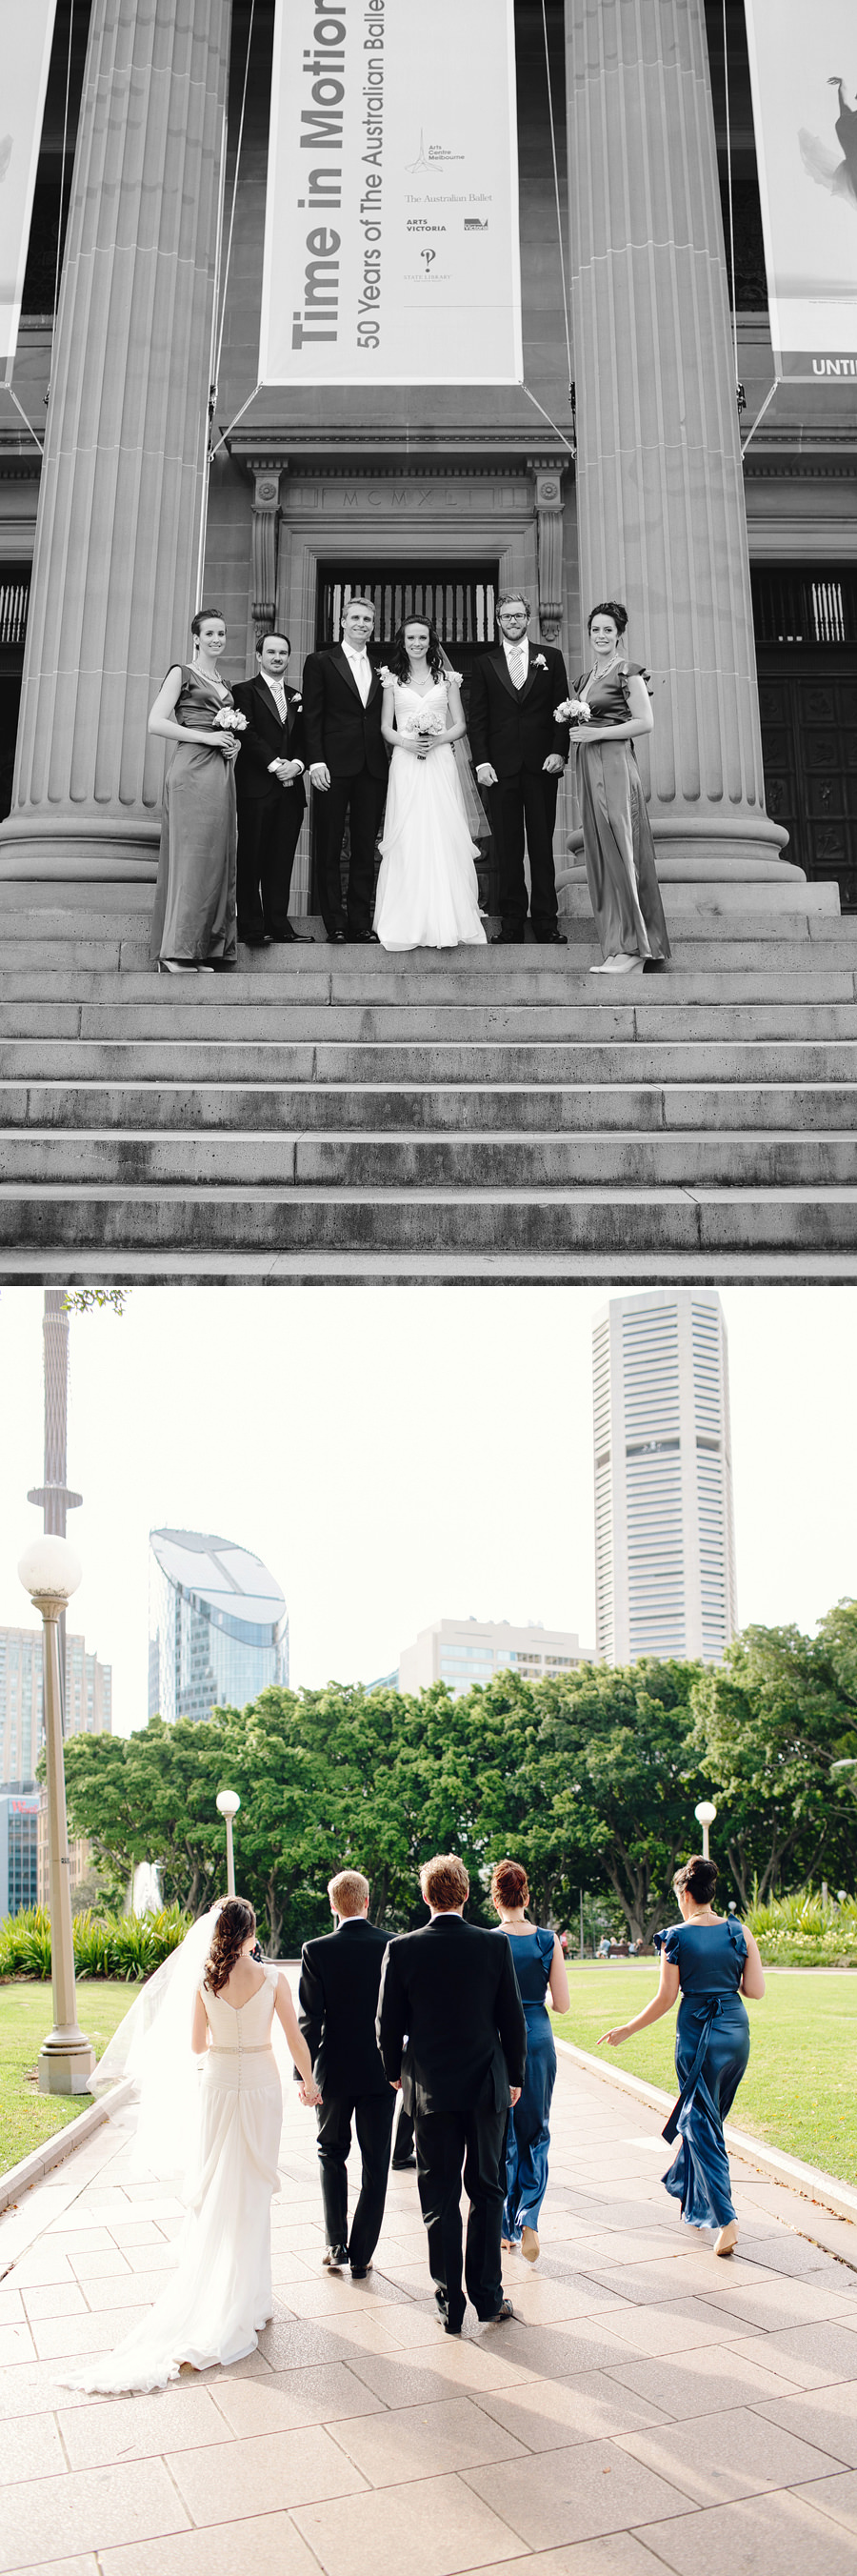 Hyde Park Wedding Photographer: Bridal party portraits